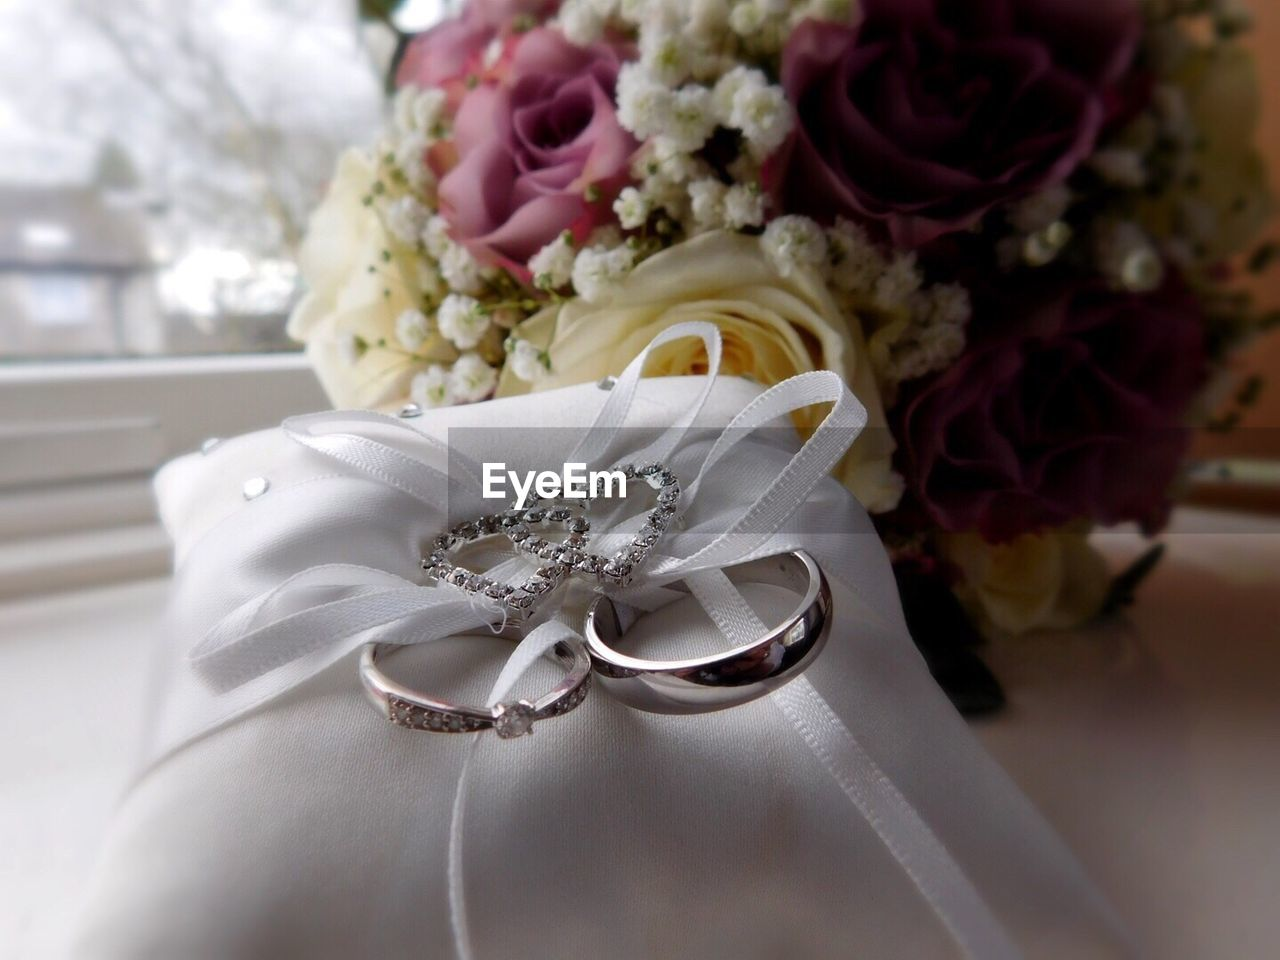 flowering plant, flower, celebration, plant, wedding, rose, event, beauty in nature, rose - flower, close-up, jewelry, flower arrangement, freshness, bouquet, white color, ring, flower head, life events, nature, wedding ring, no people, wedding ceremony, personal accessory